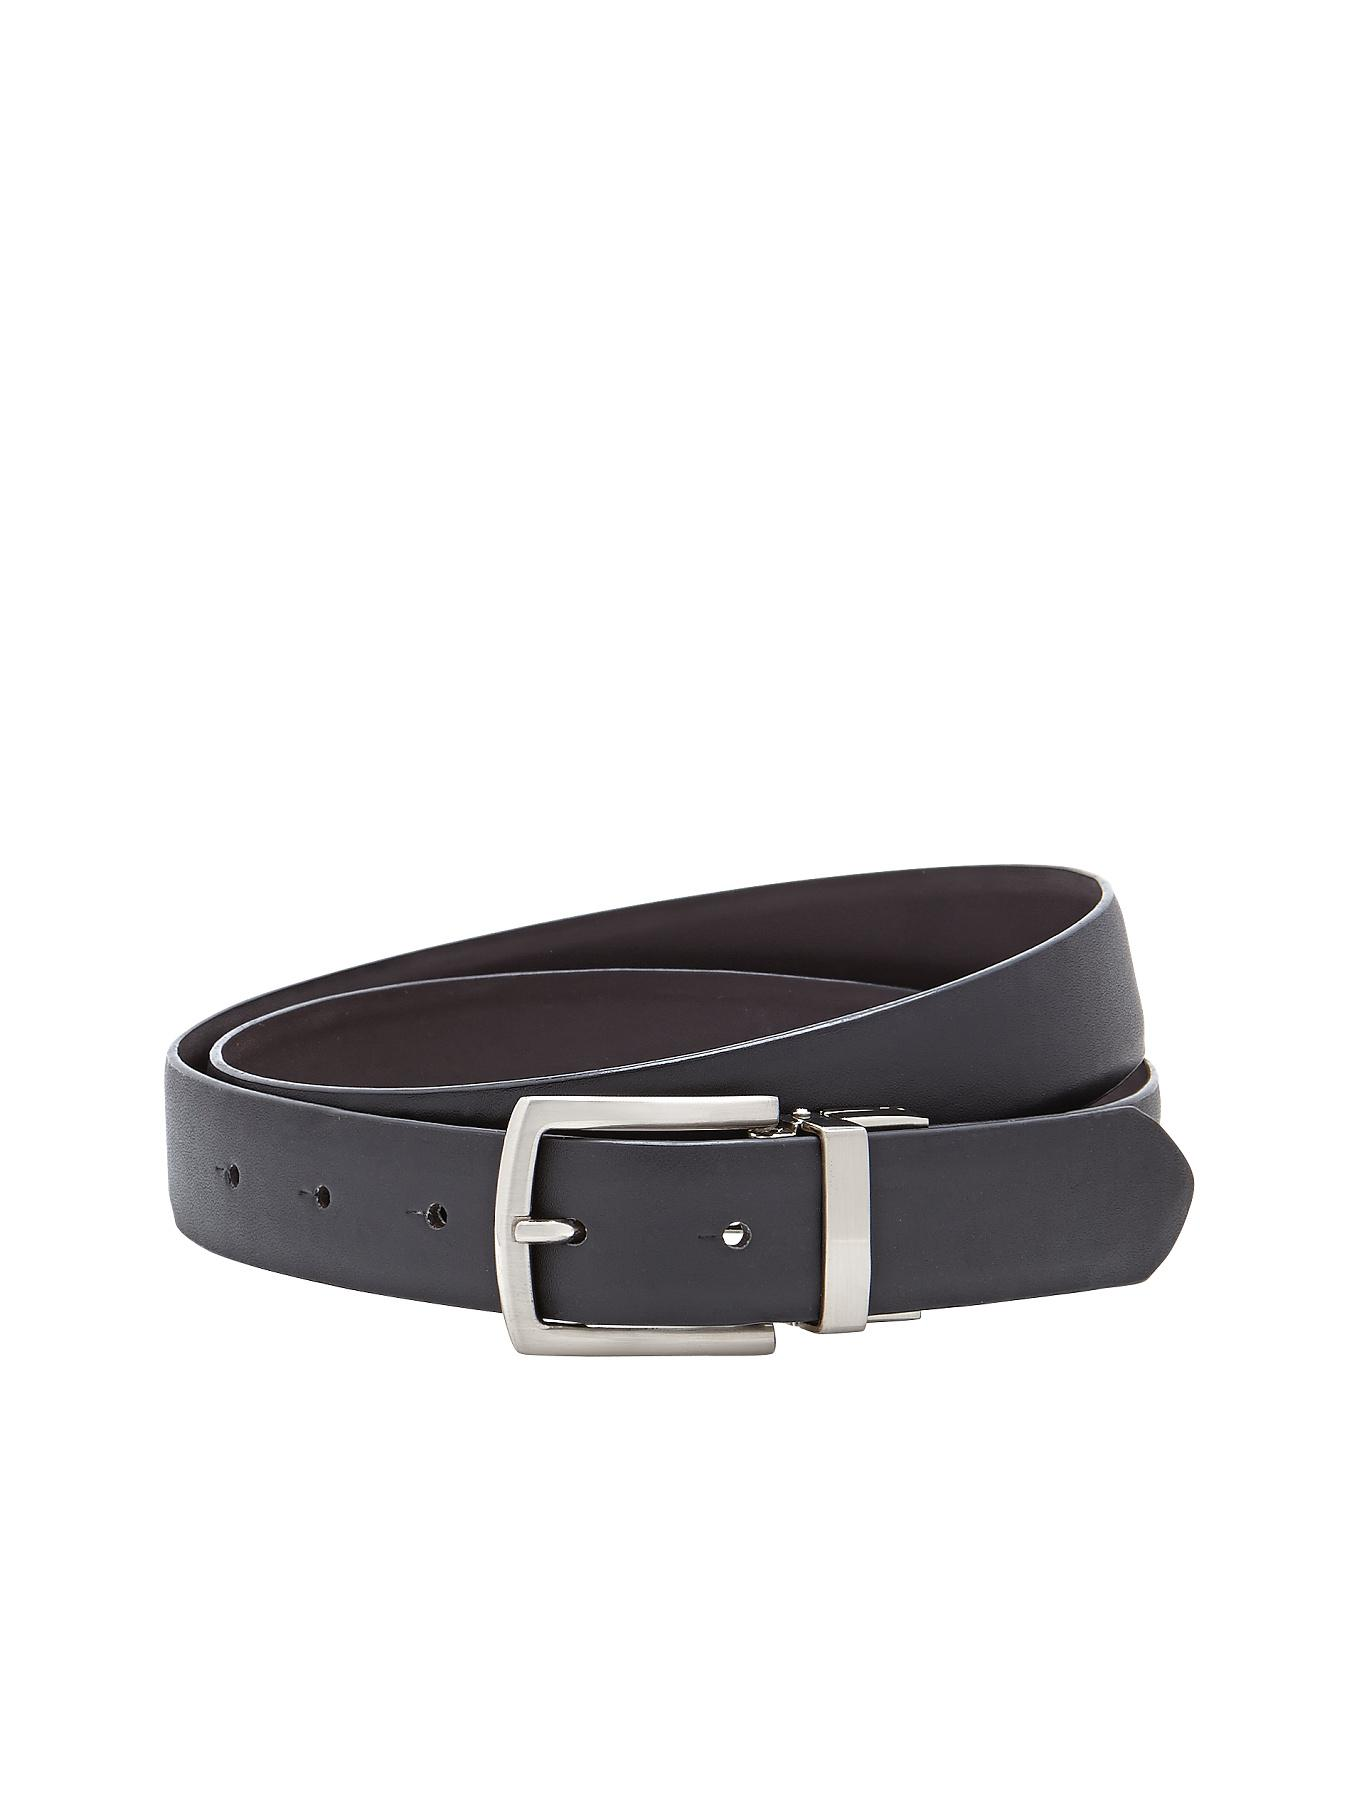 Mens Reversible Belt, Black